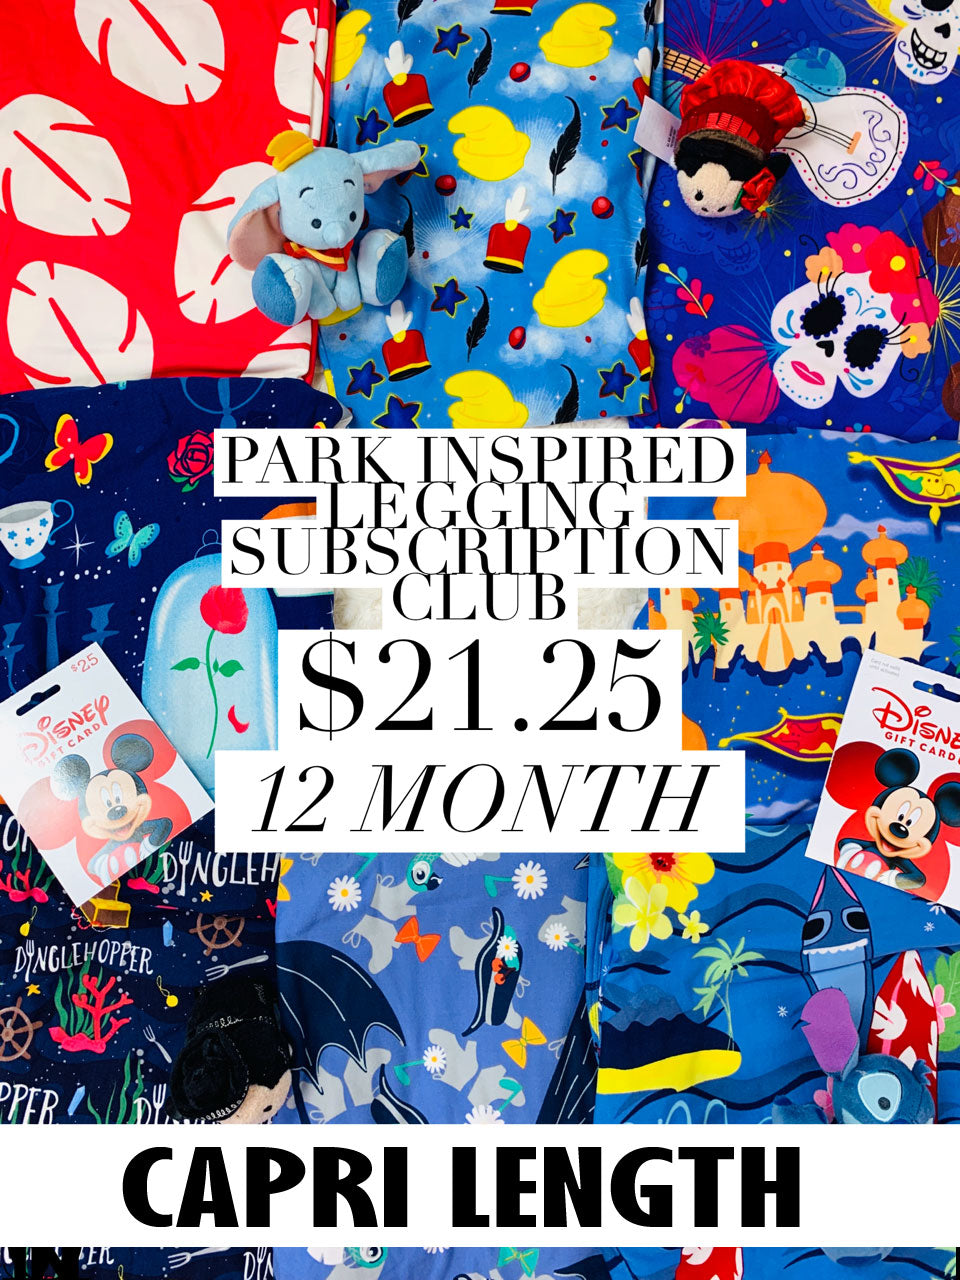 Park Inspired Capri Leggings Subscription Club - 12 Month Subscription - Ambrie